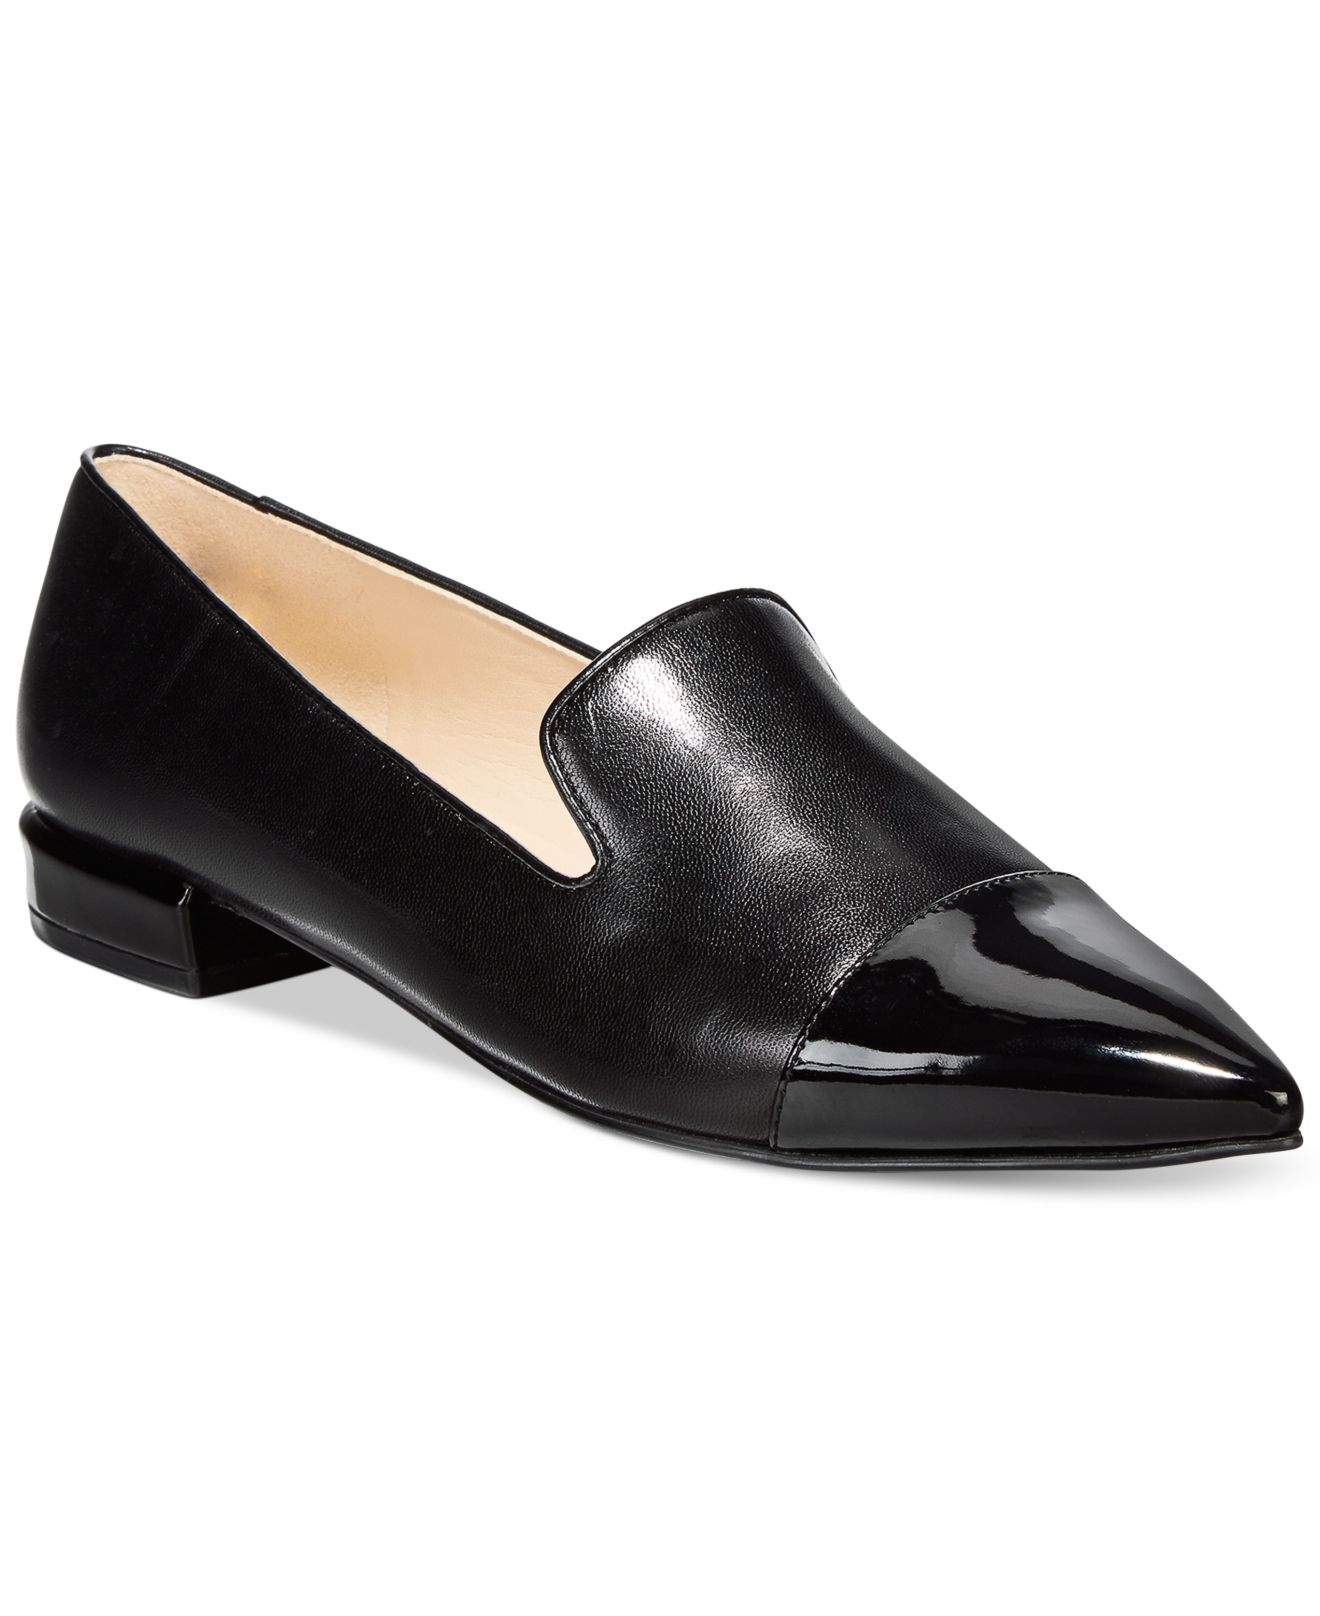 Crafted from soft black leather in a classic silhouette, the Packham Loafer is an effortless wardrobe essential, perfect for workwear and weekends alike. Madeline Black Leather Pointed Toe Flat. Black Leather. $ BECOME A. Wittner Co. Member. Step up and experience higher rewards. Join Now. Wittner supports you.